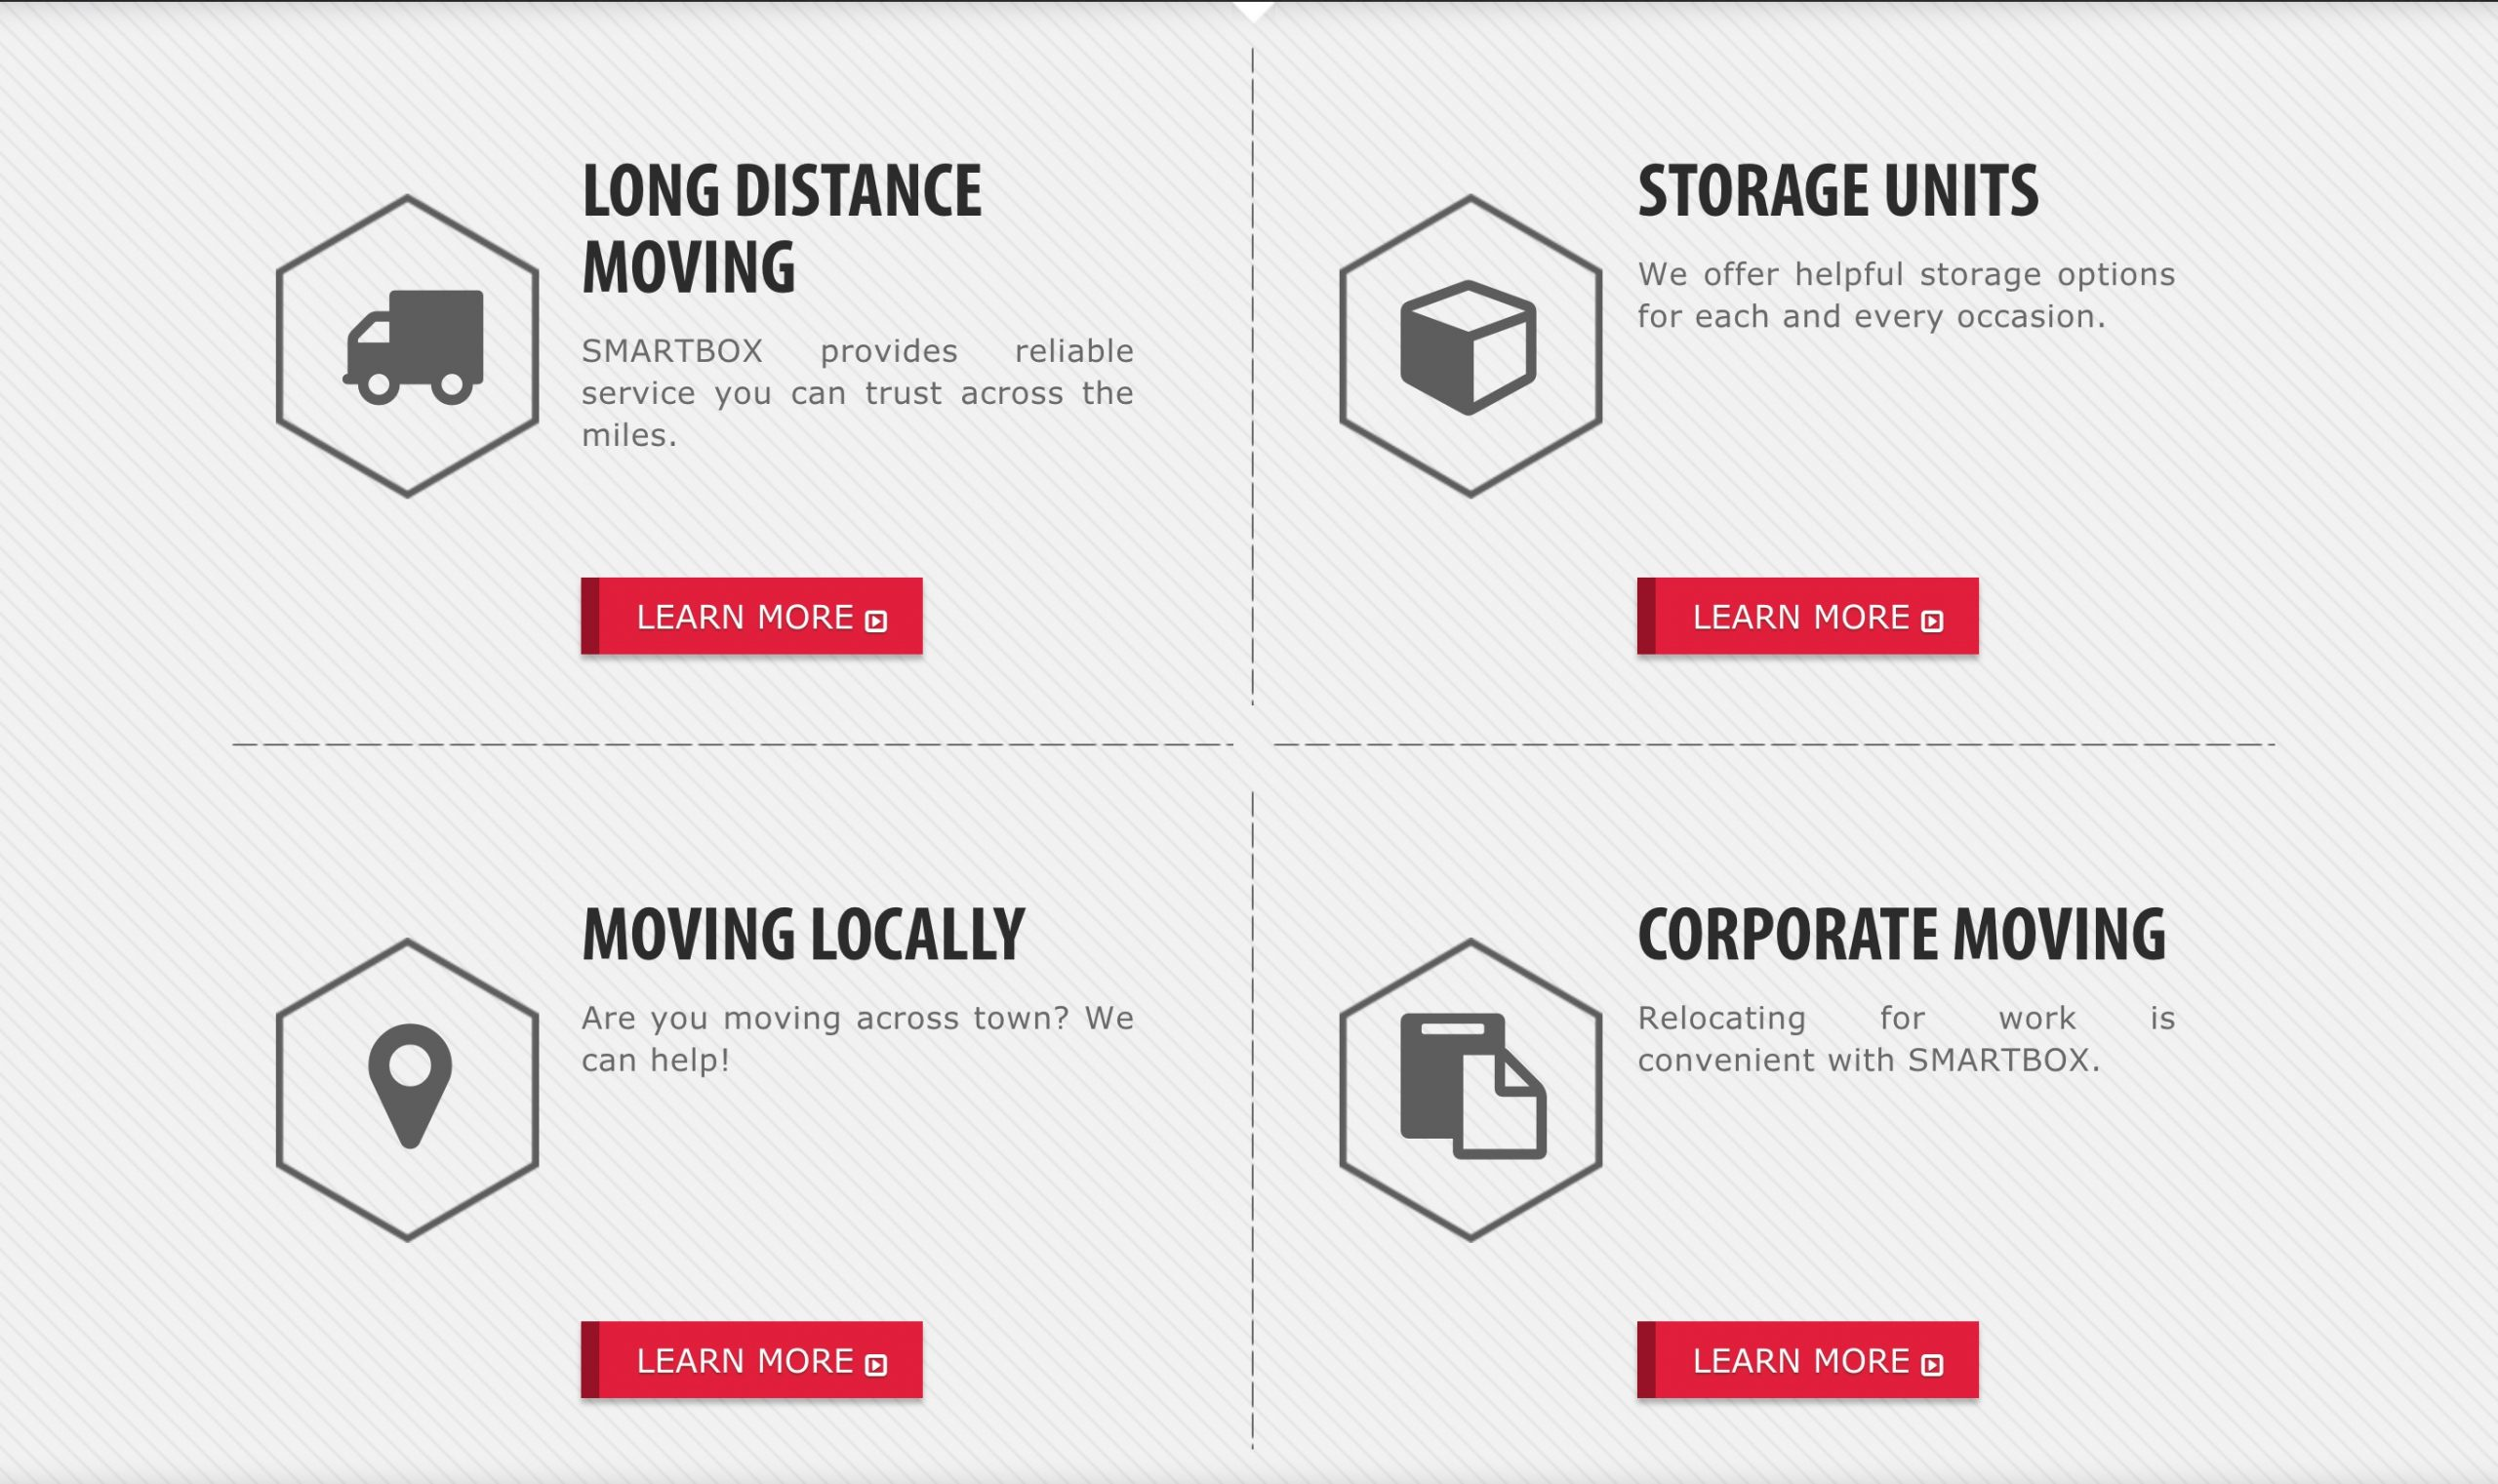 smartbox moving features